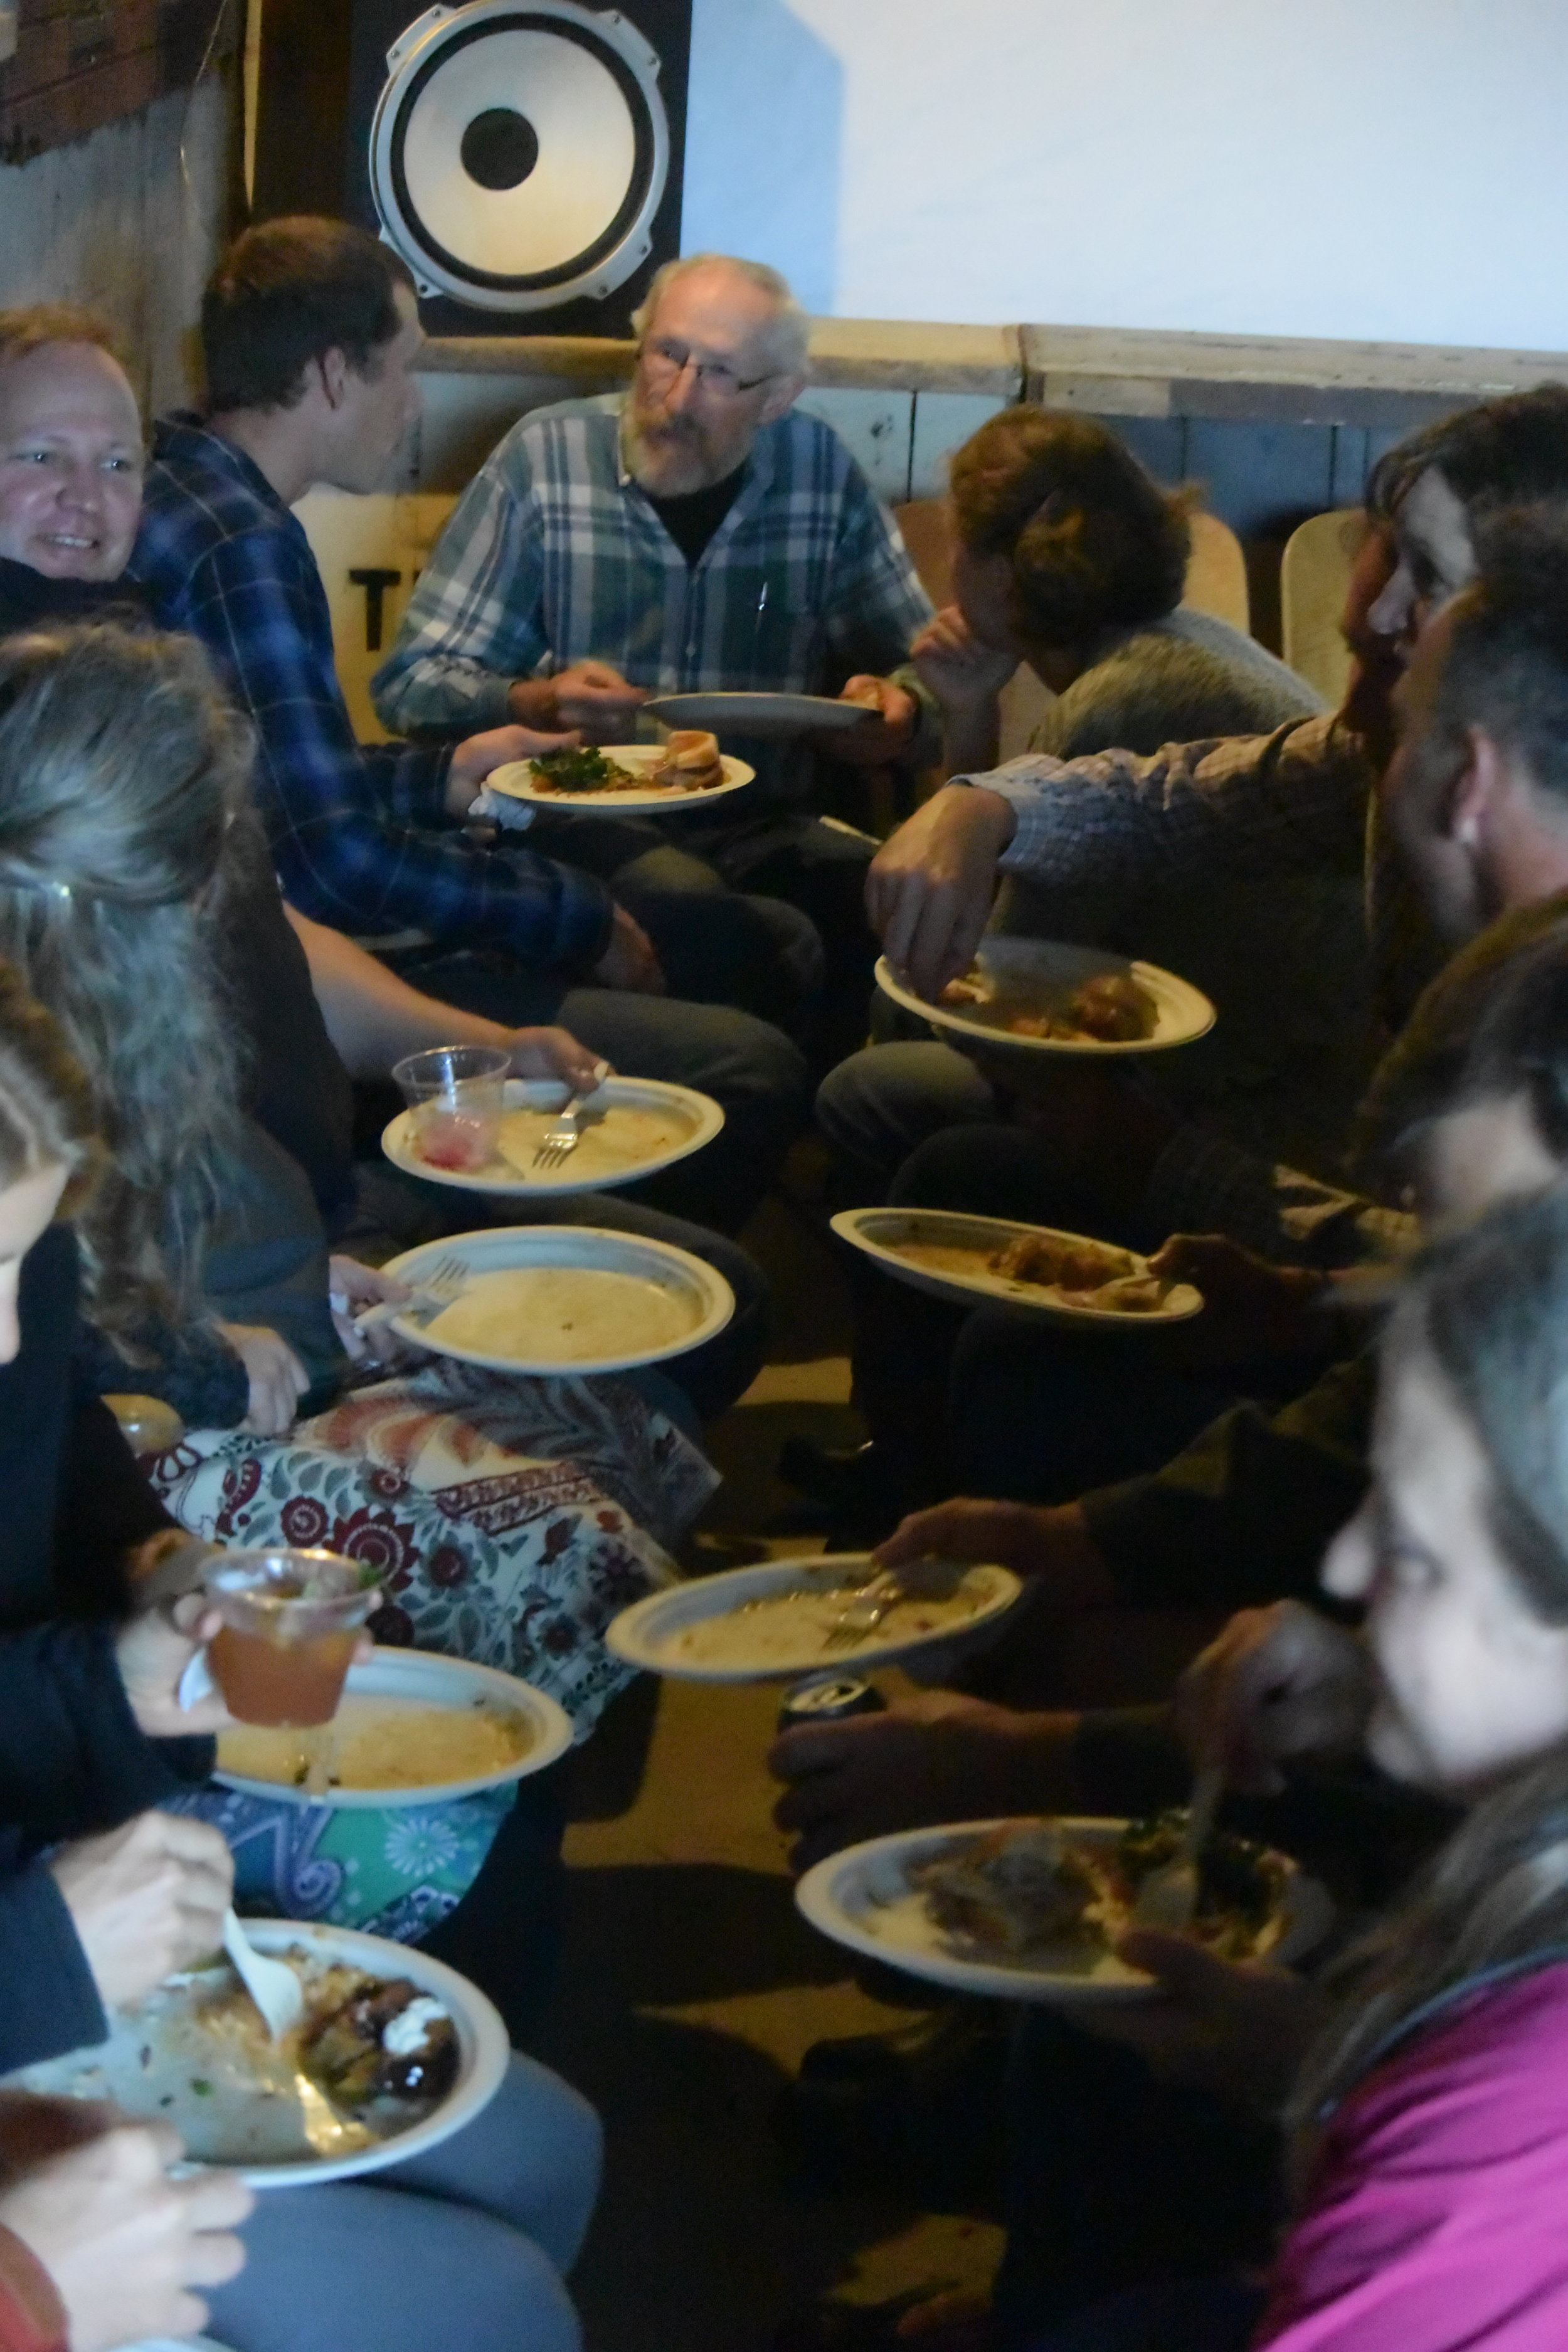 Folks enjoying food donated by Lake Avenue Restaurant, The Duluth Grill, At Sara's Table, and the Whole Foods Coop.